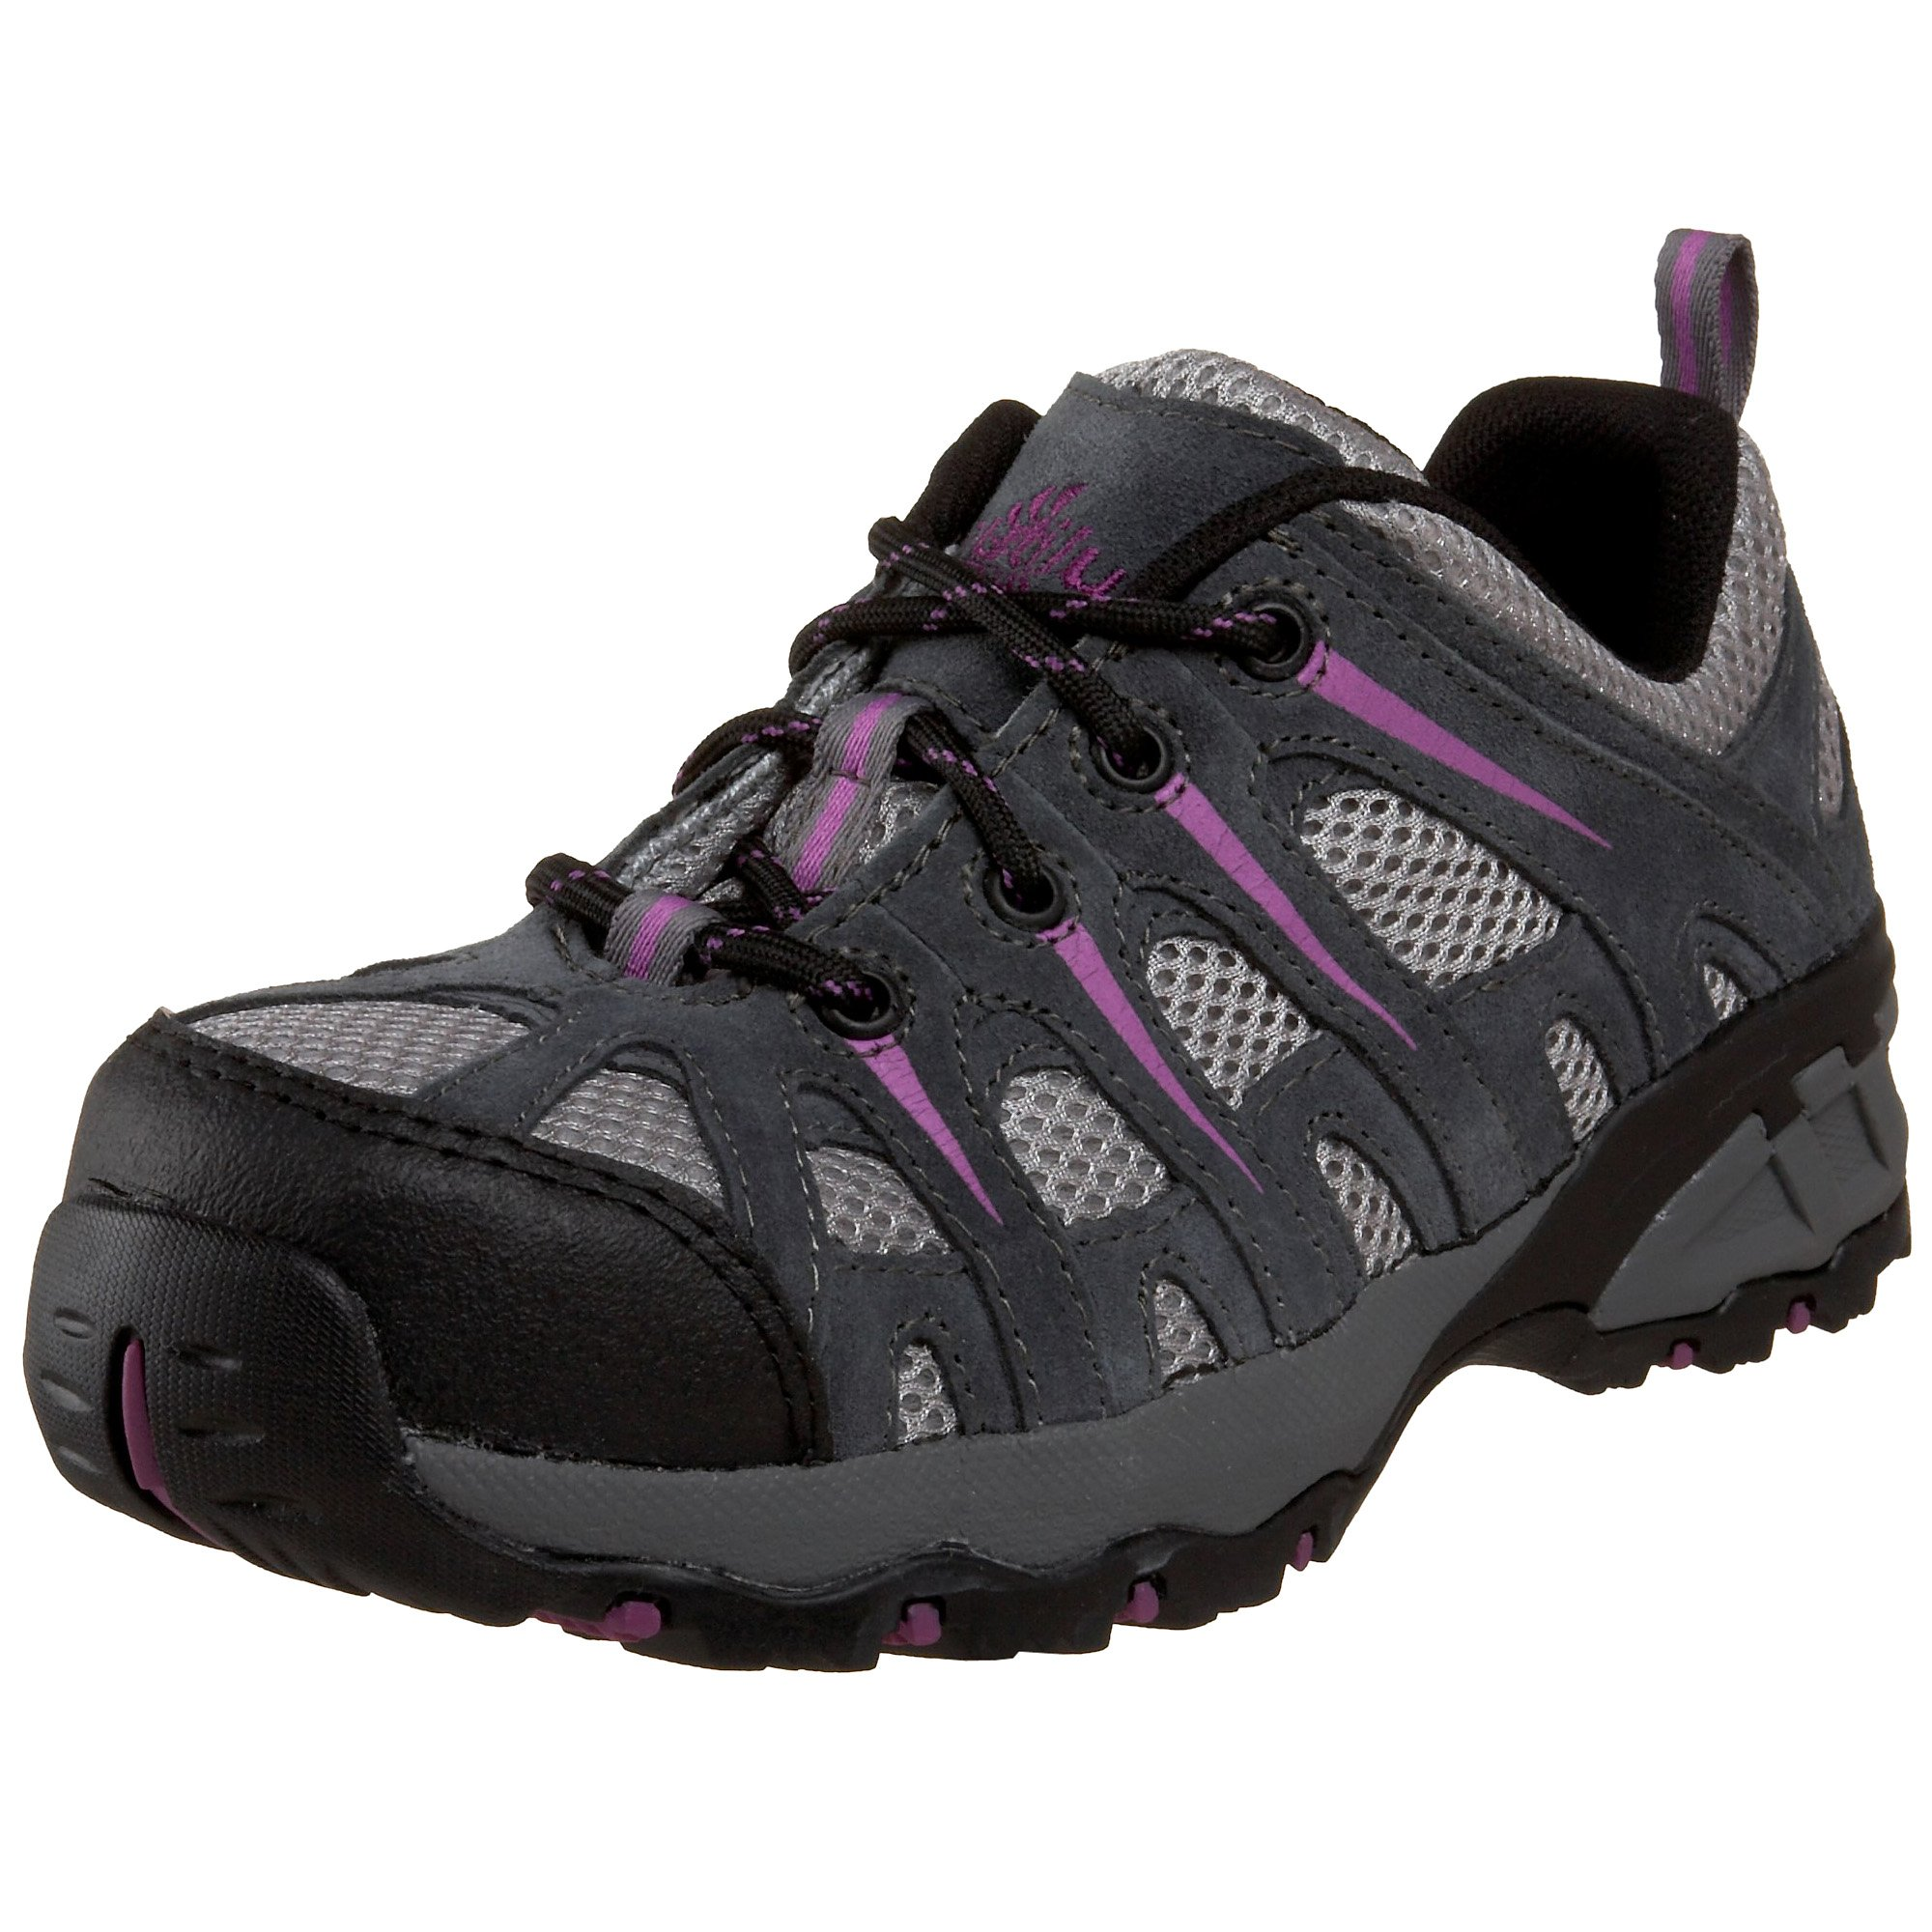 Nautilus 1754 Women's Comp Toe No Exposed Metal EH Athletic Shoe,Grey/Lavender,7 M US by Nautilus Safety Footwear